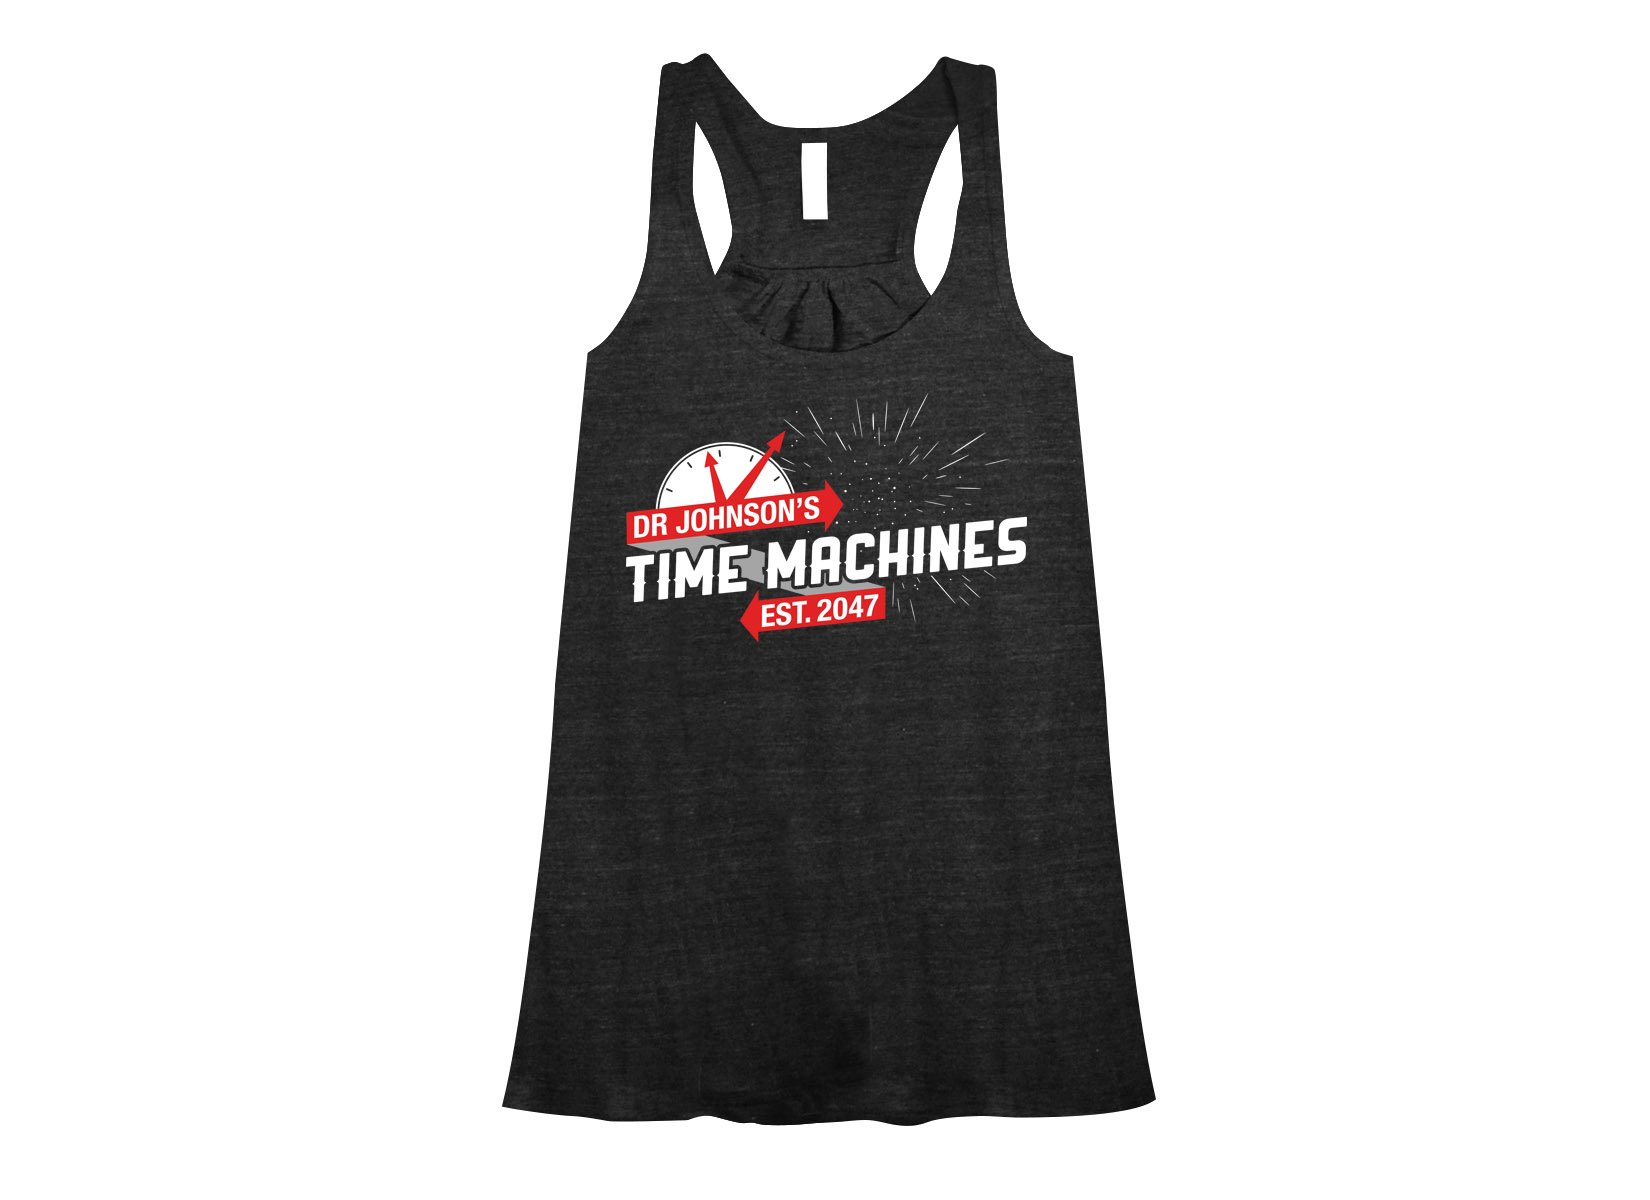 Dr Johnson's Time Machines on Womens Tanks T-Shirt